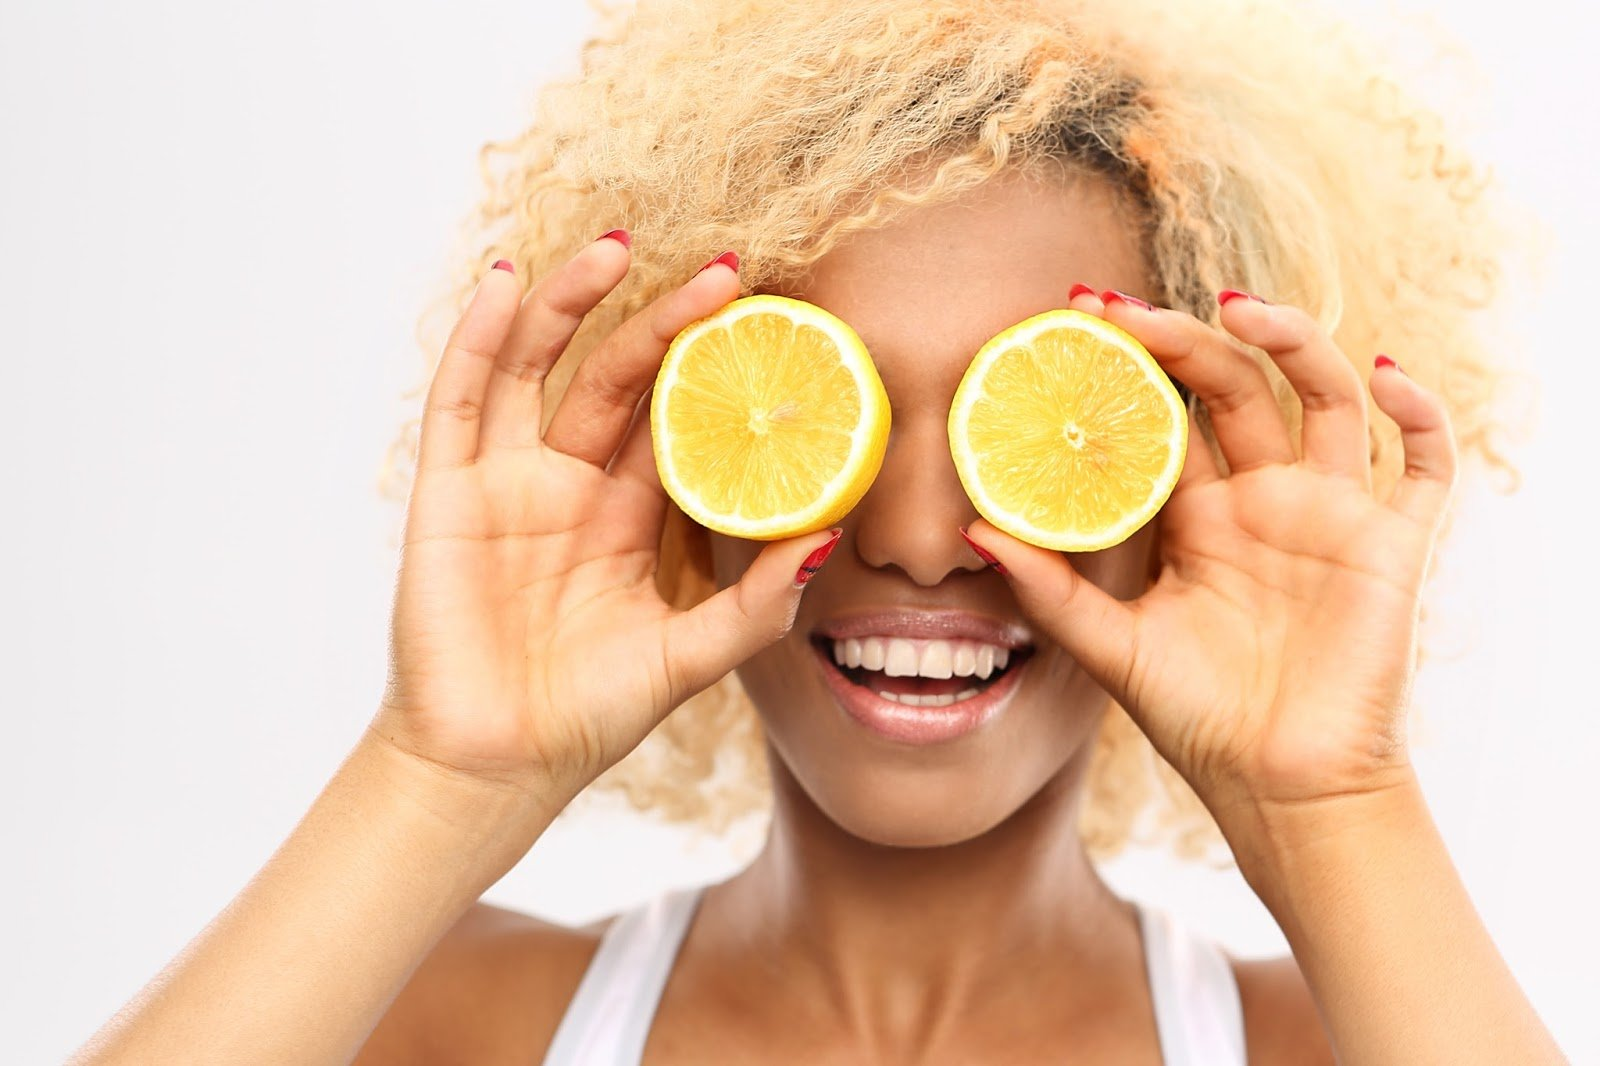 Yay Or Nay? Is Drinking Lemon Water Really Good For You?